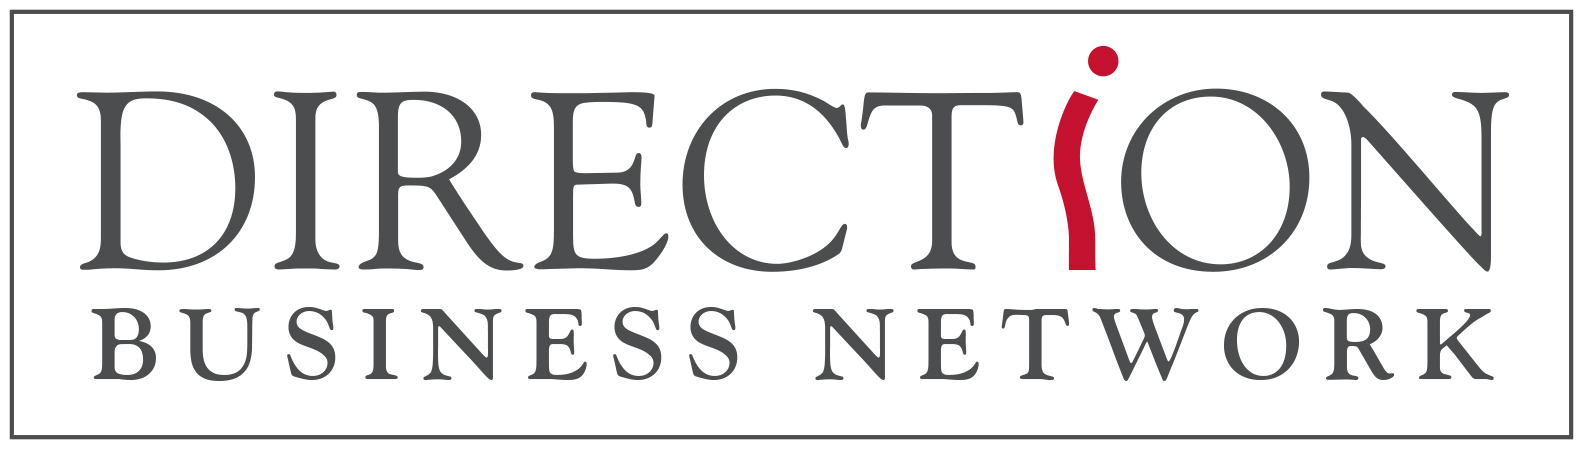 DIRECTION BUSINESS NETWORK logo